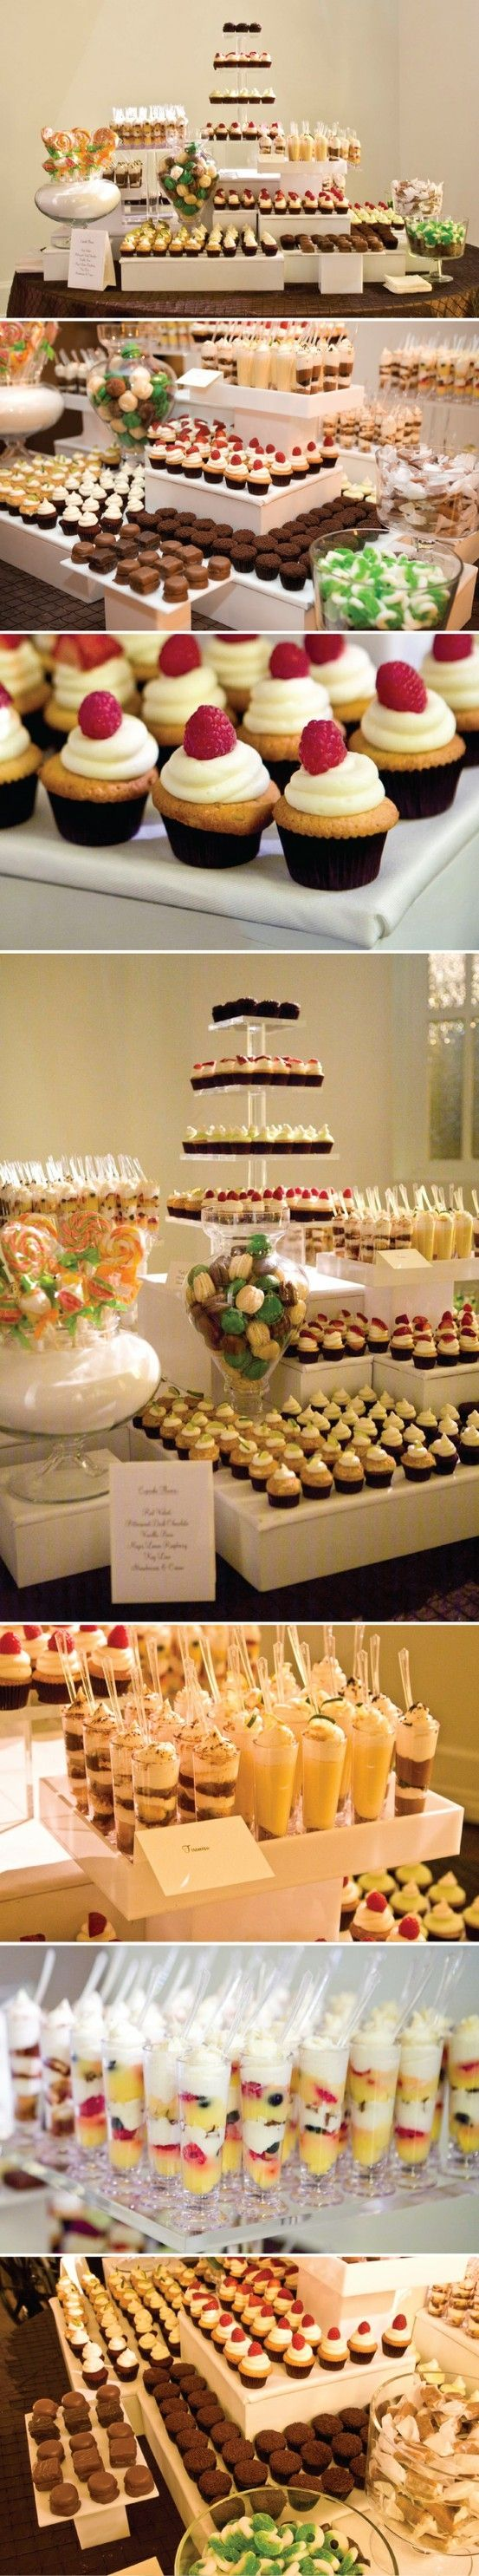 Mini dessert bar. Such a wonderful alternative to a huge expensive wedding cake and guests get what they like and want vs.cake that not everyone enjoys.